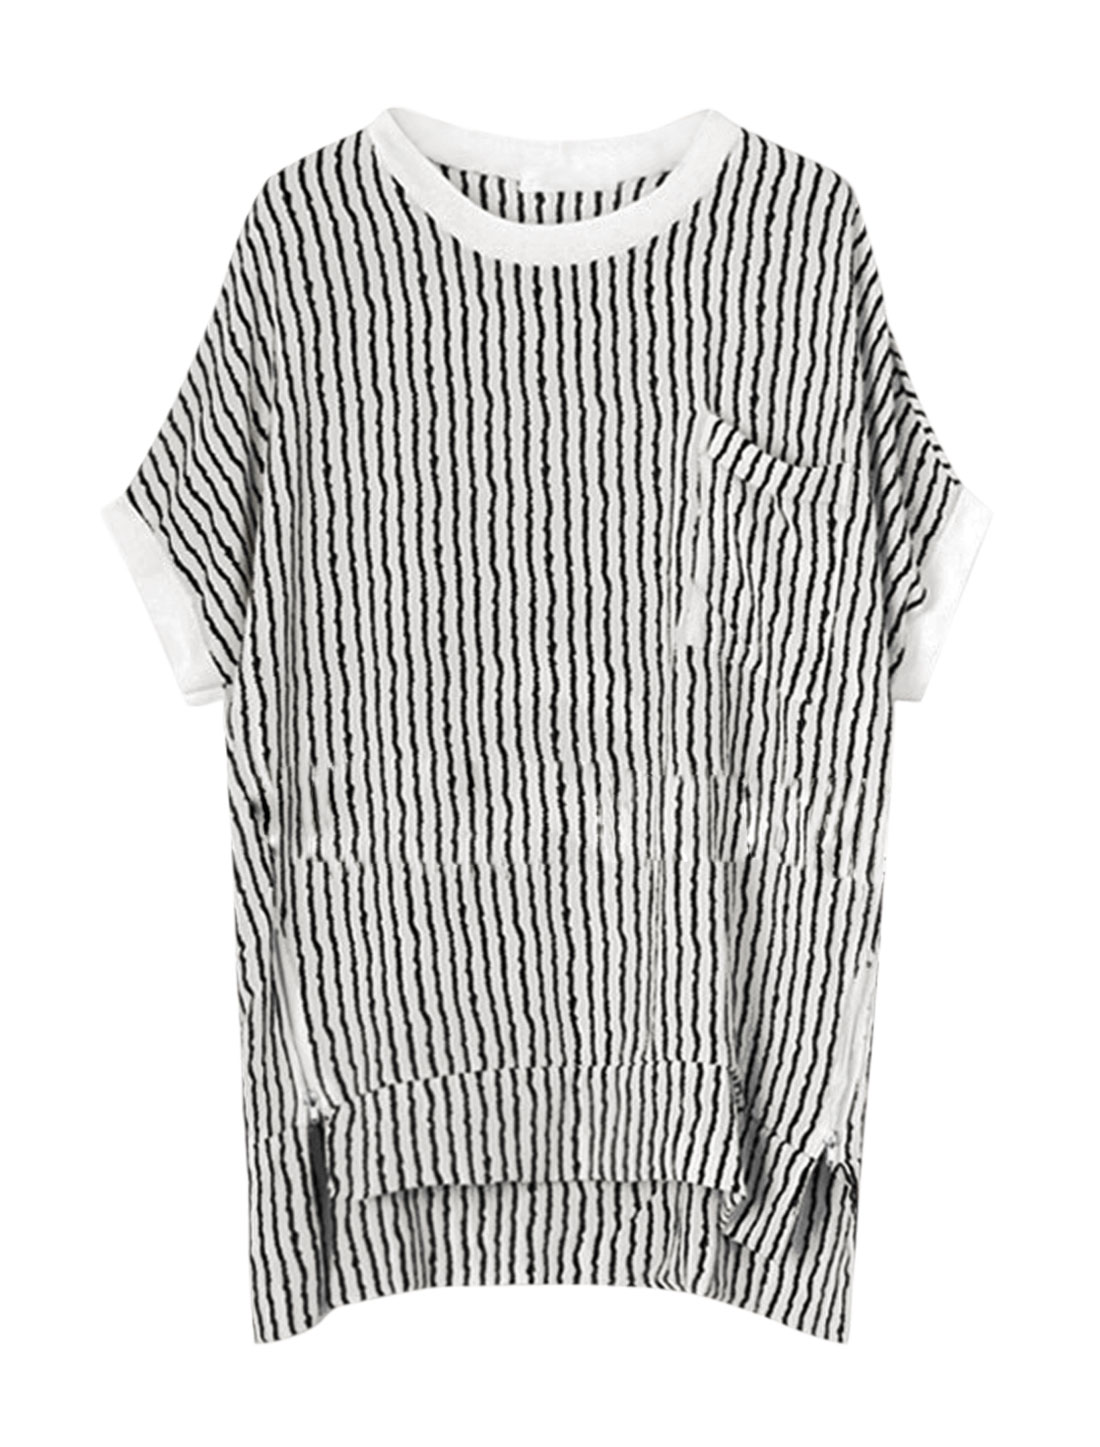 Woman Vertical Stripes Short Sleeves High Low Hem Tunic Top White L